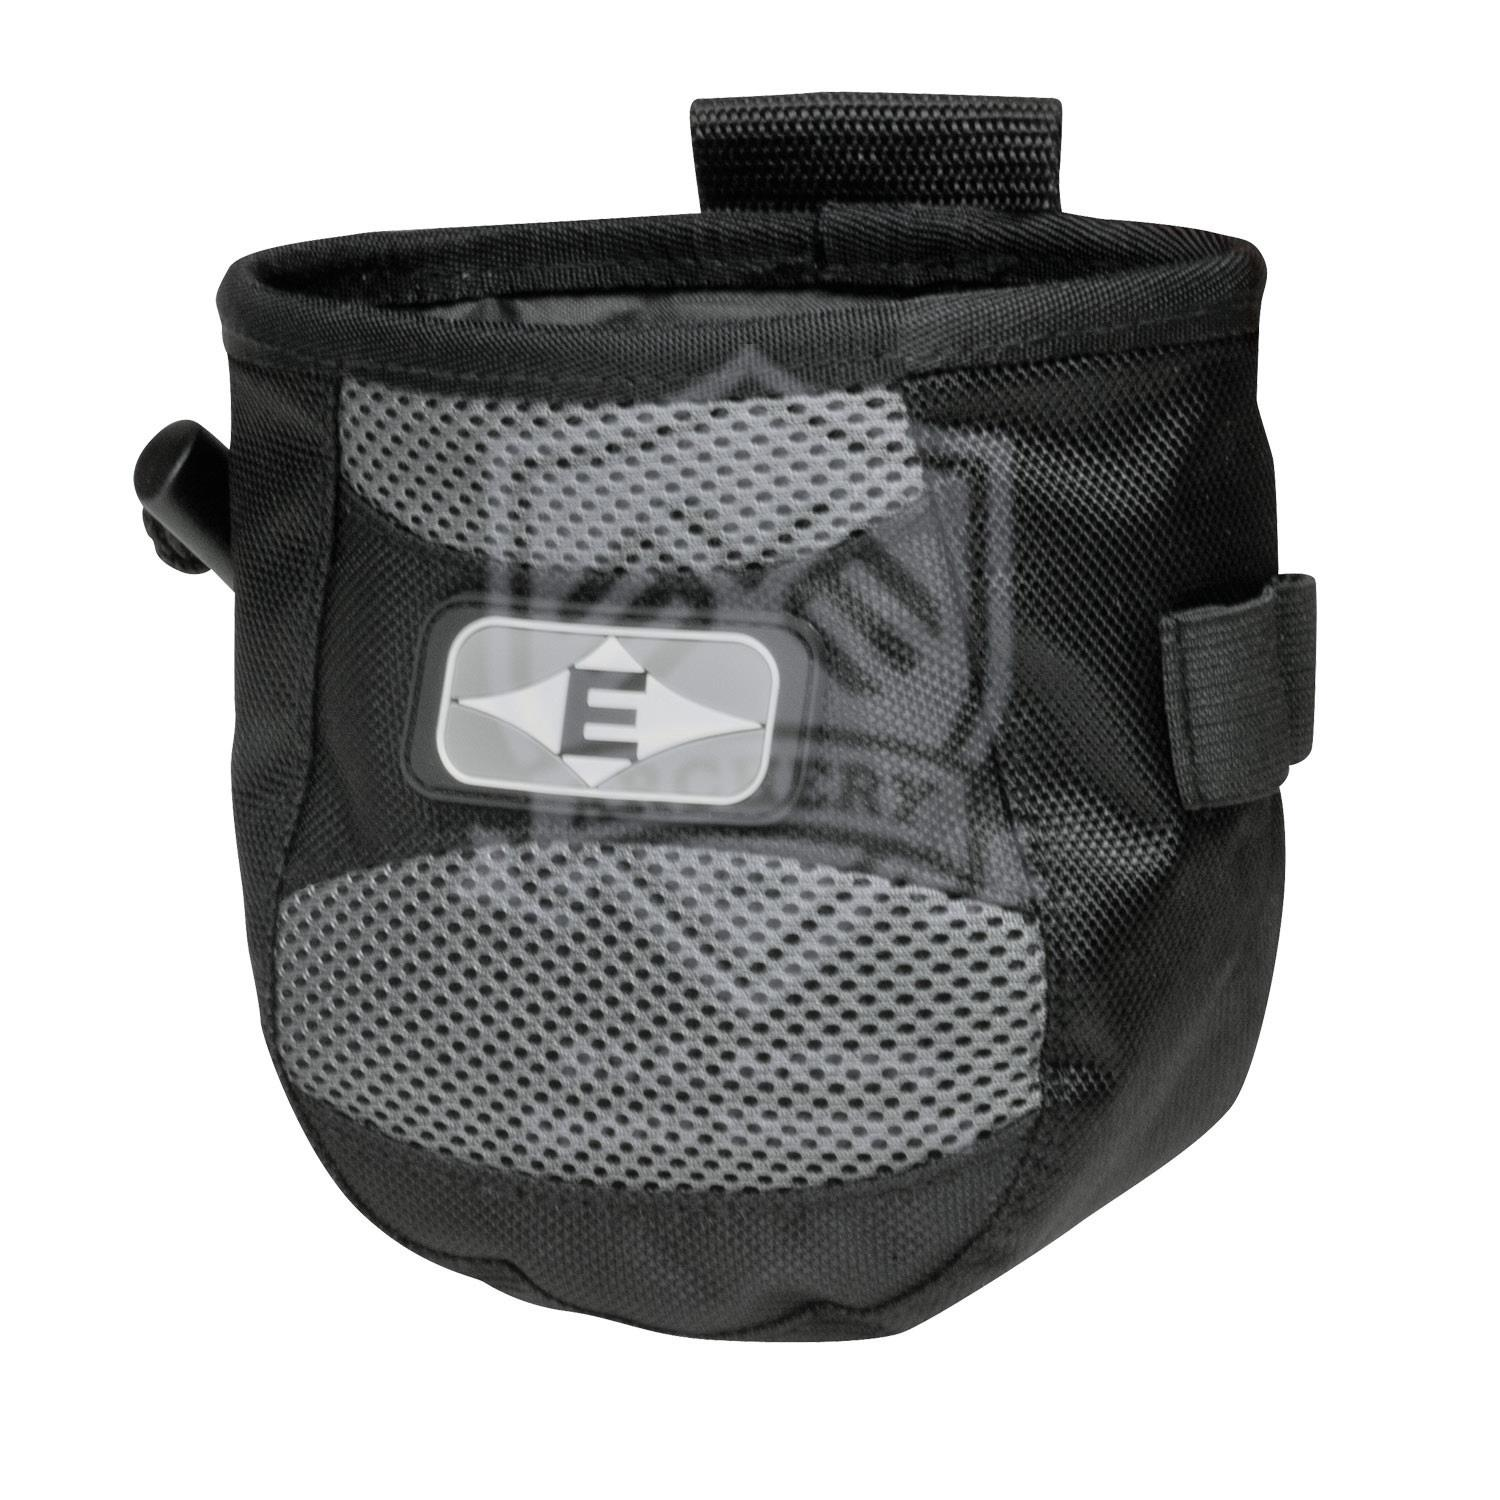 EASTON RELEASE POUCH DELUXE